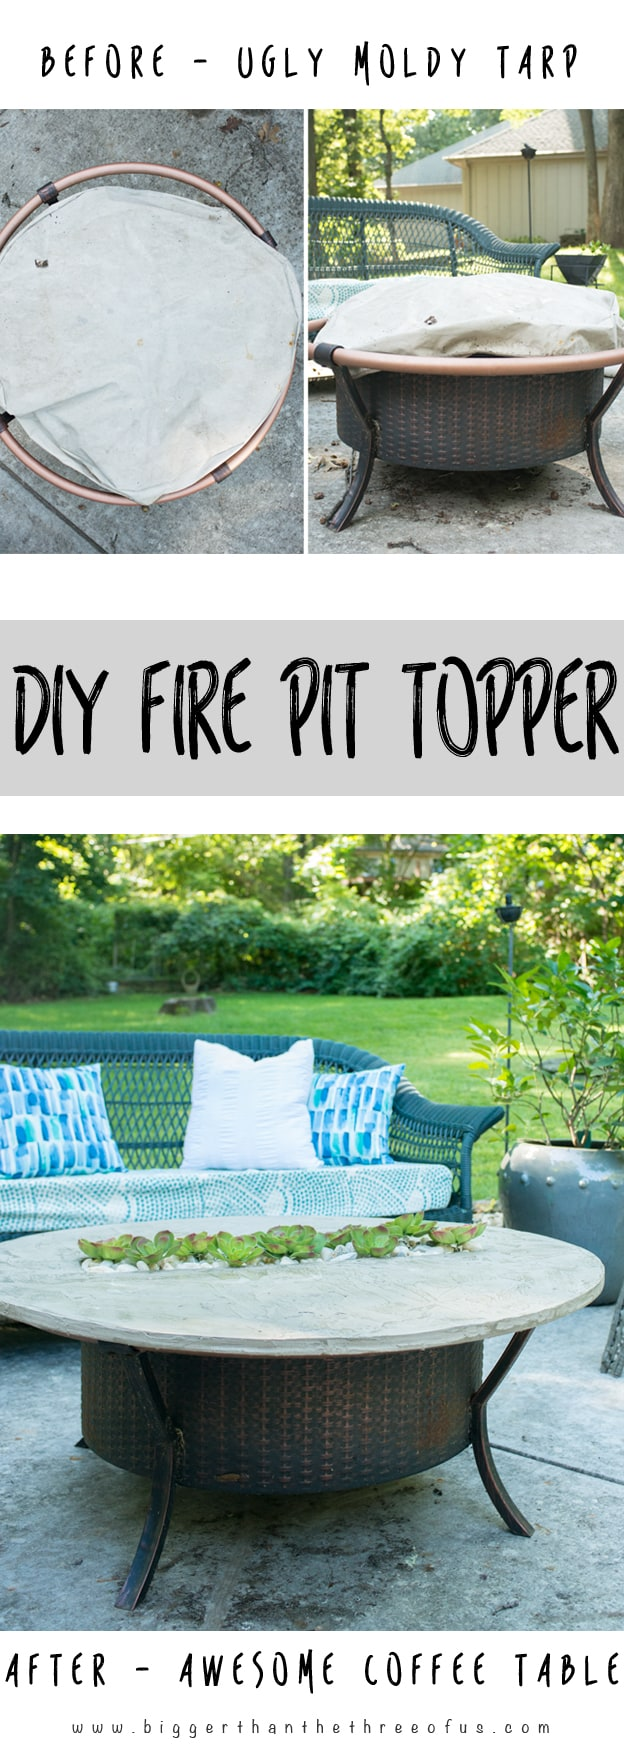 Transform that Fire Pit to an adorable coffee table when it's not in use.  Follow - How To Make A Fire Pit Topper